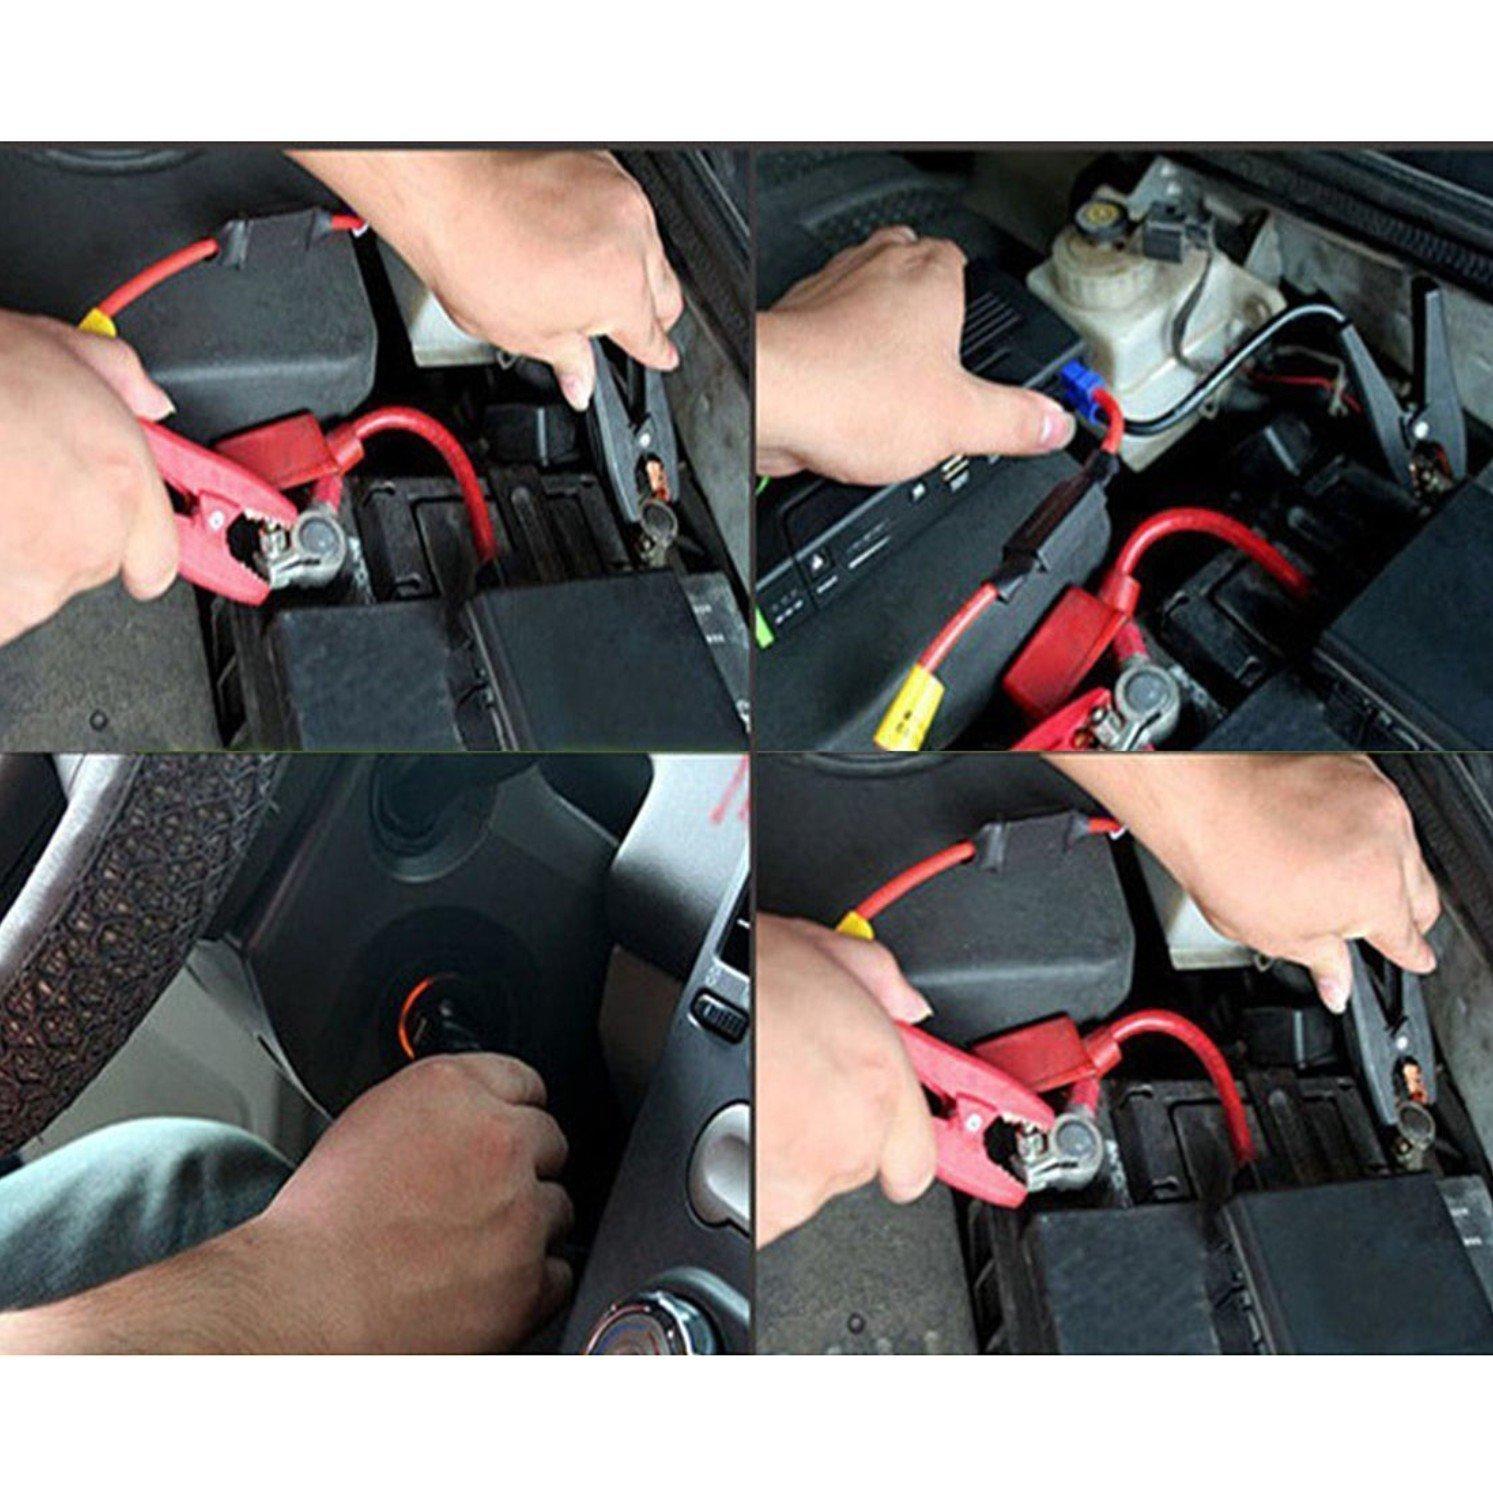 Alligator clip EC5 Battery Jumper Cable,SinLoon Booster Jumper Cables Automotive Replacement Jump Starter EC5 Connector Emergency Jumper Cable Alligator Clips for Car 12V Portable Car Jump Starter